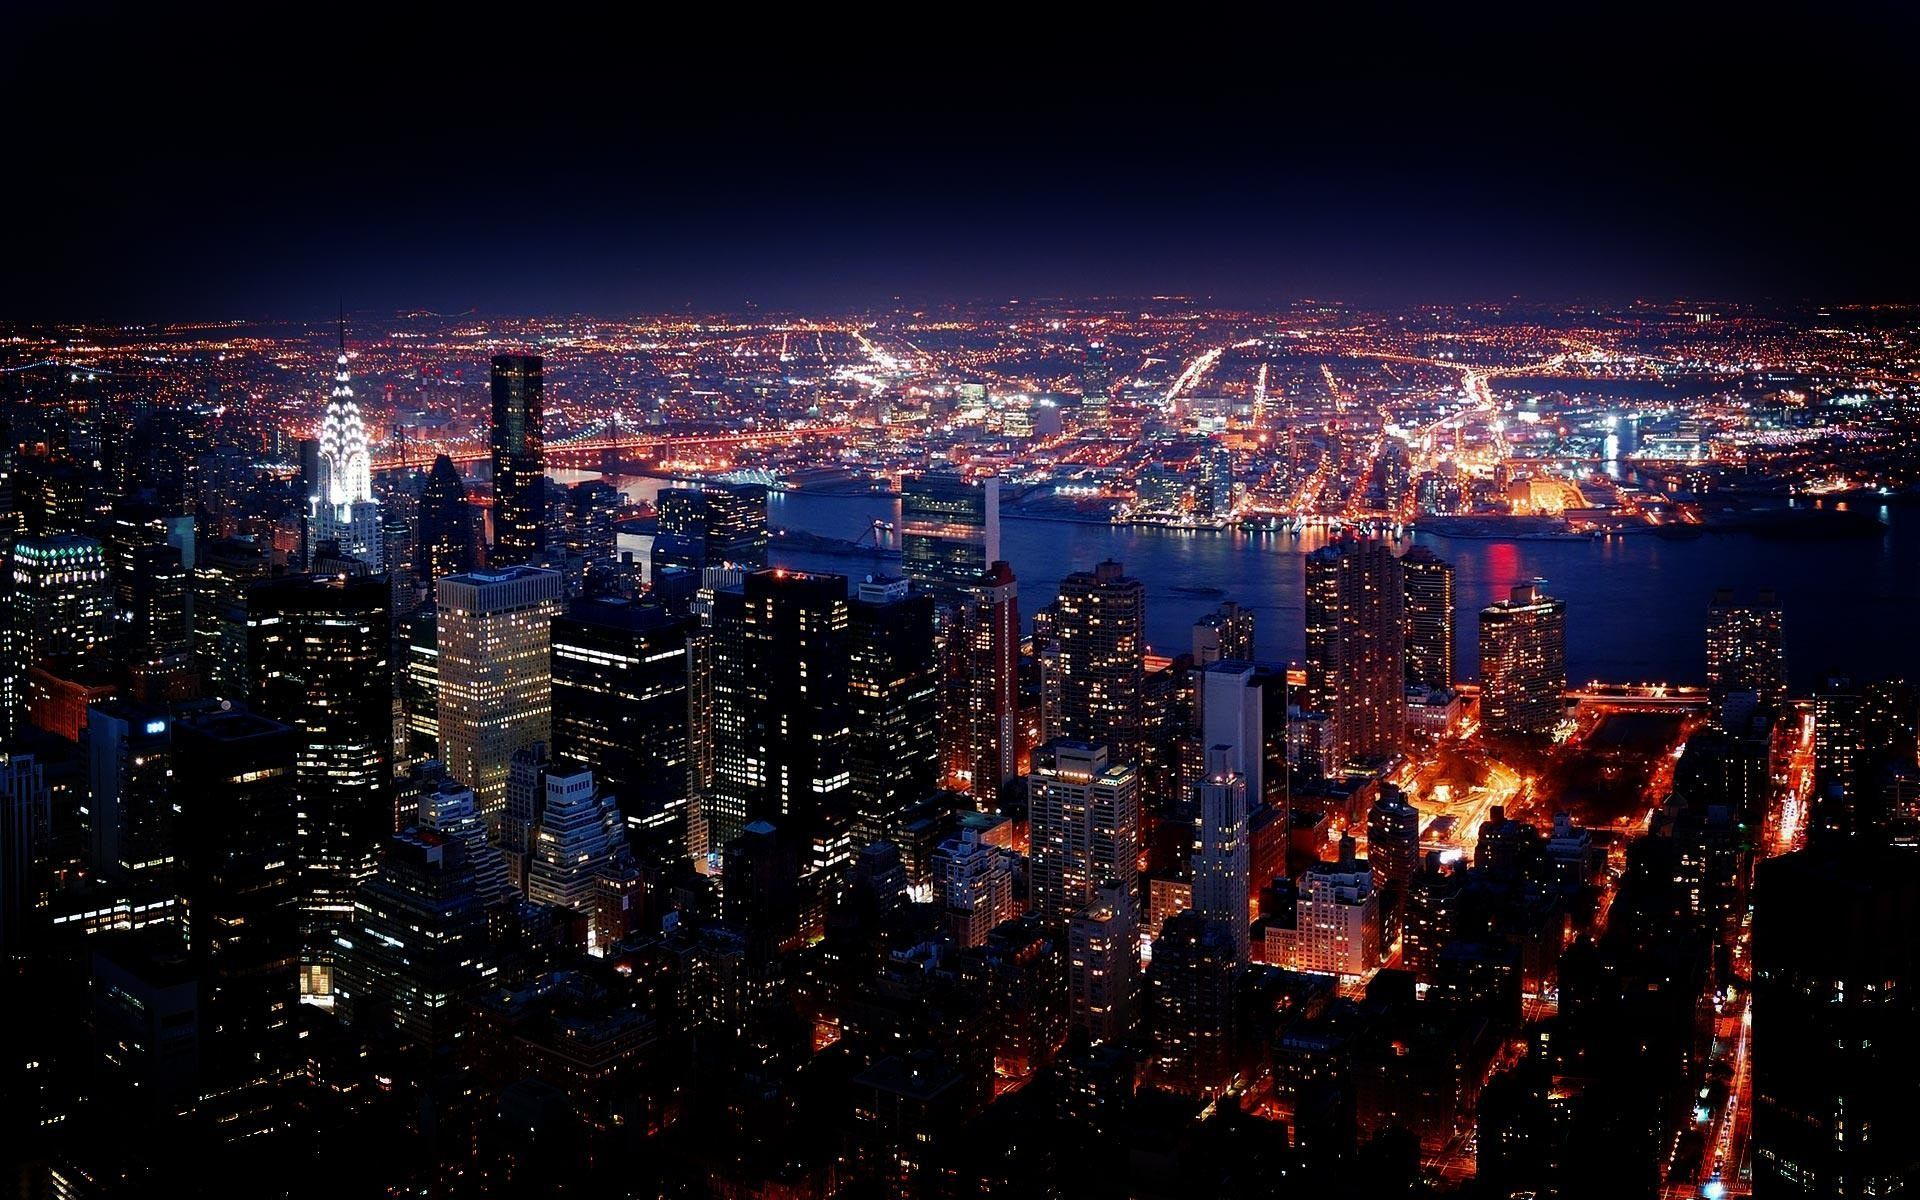 Hd Nyc Wallpaper wallpaper hd